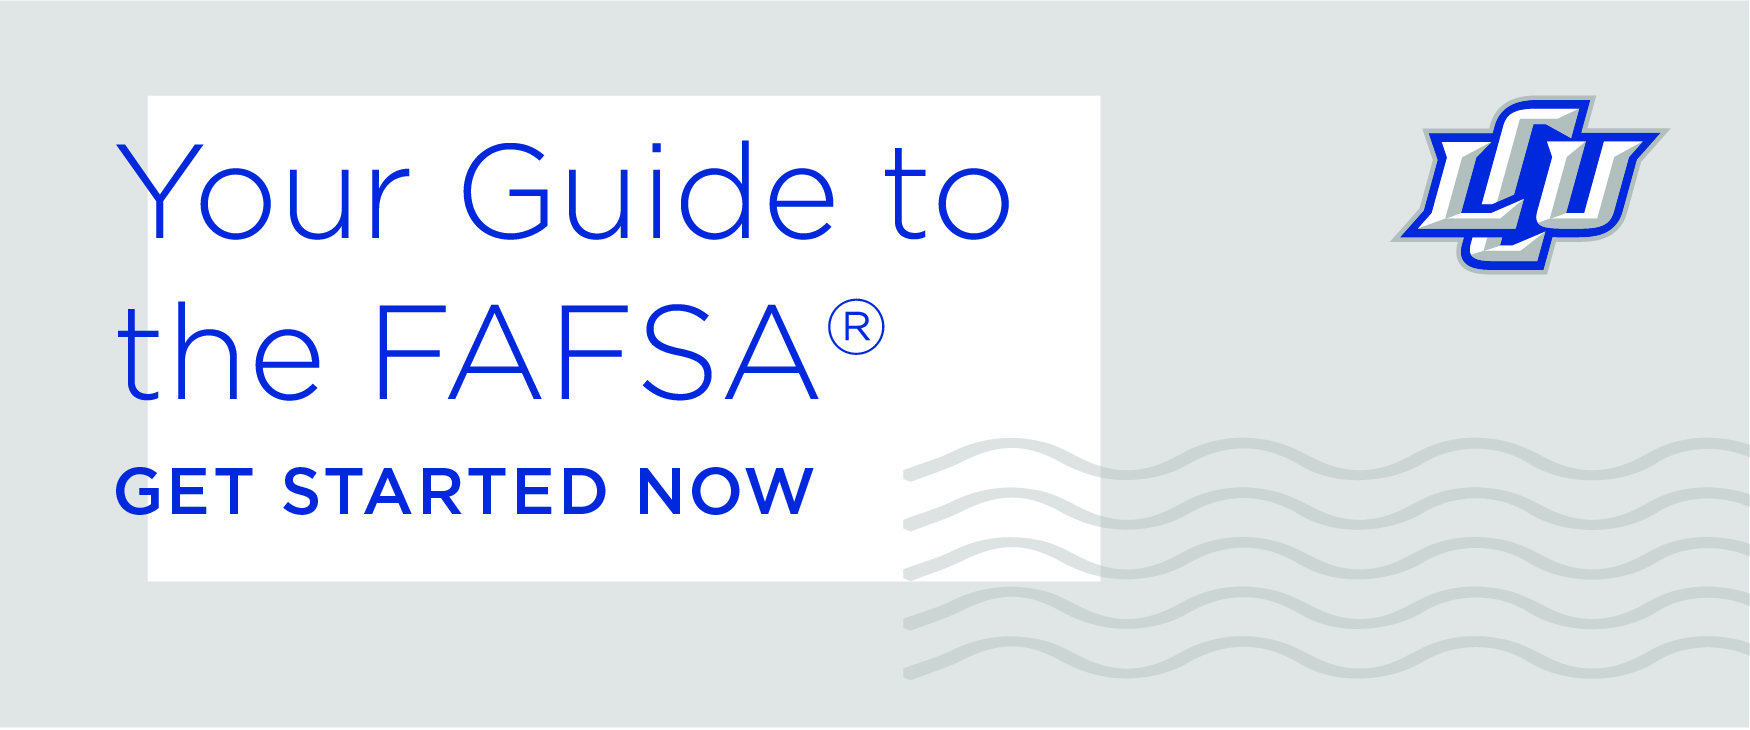 Essential Checklist for Completing Your FAFSA